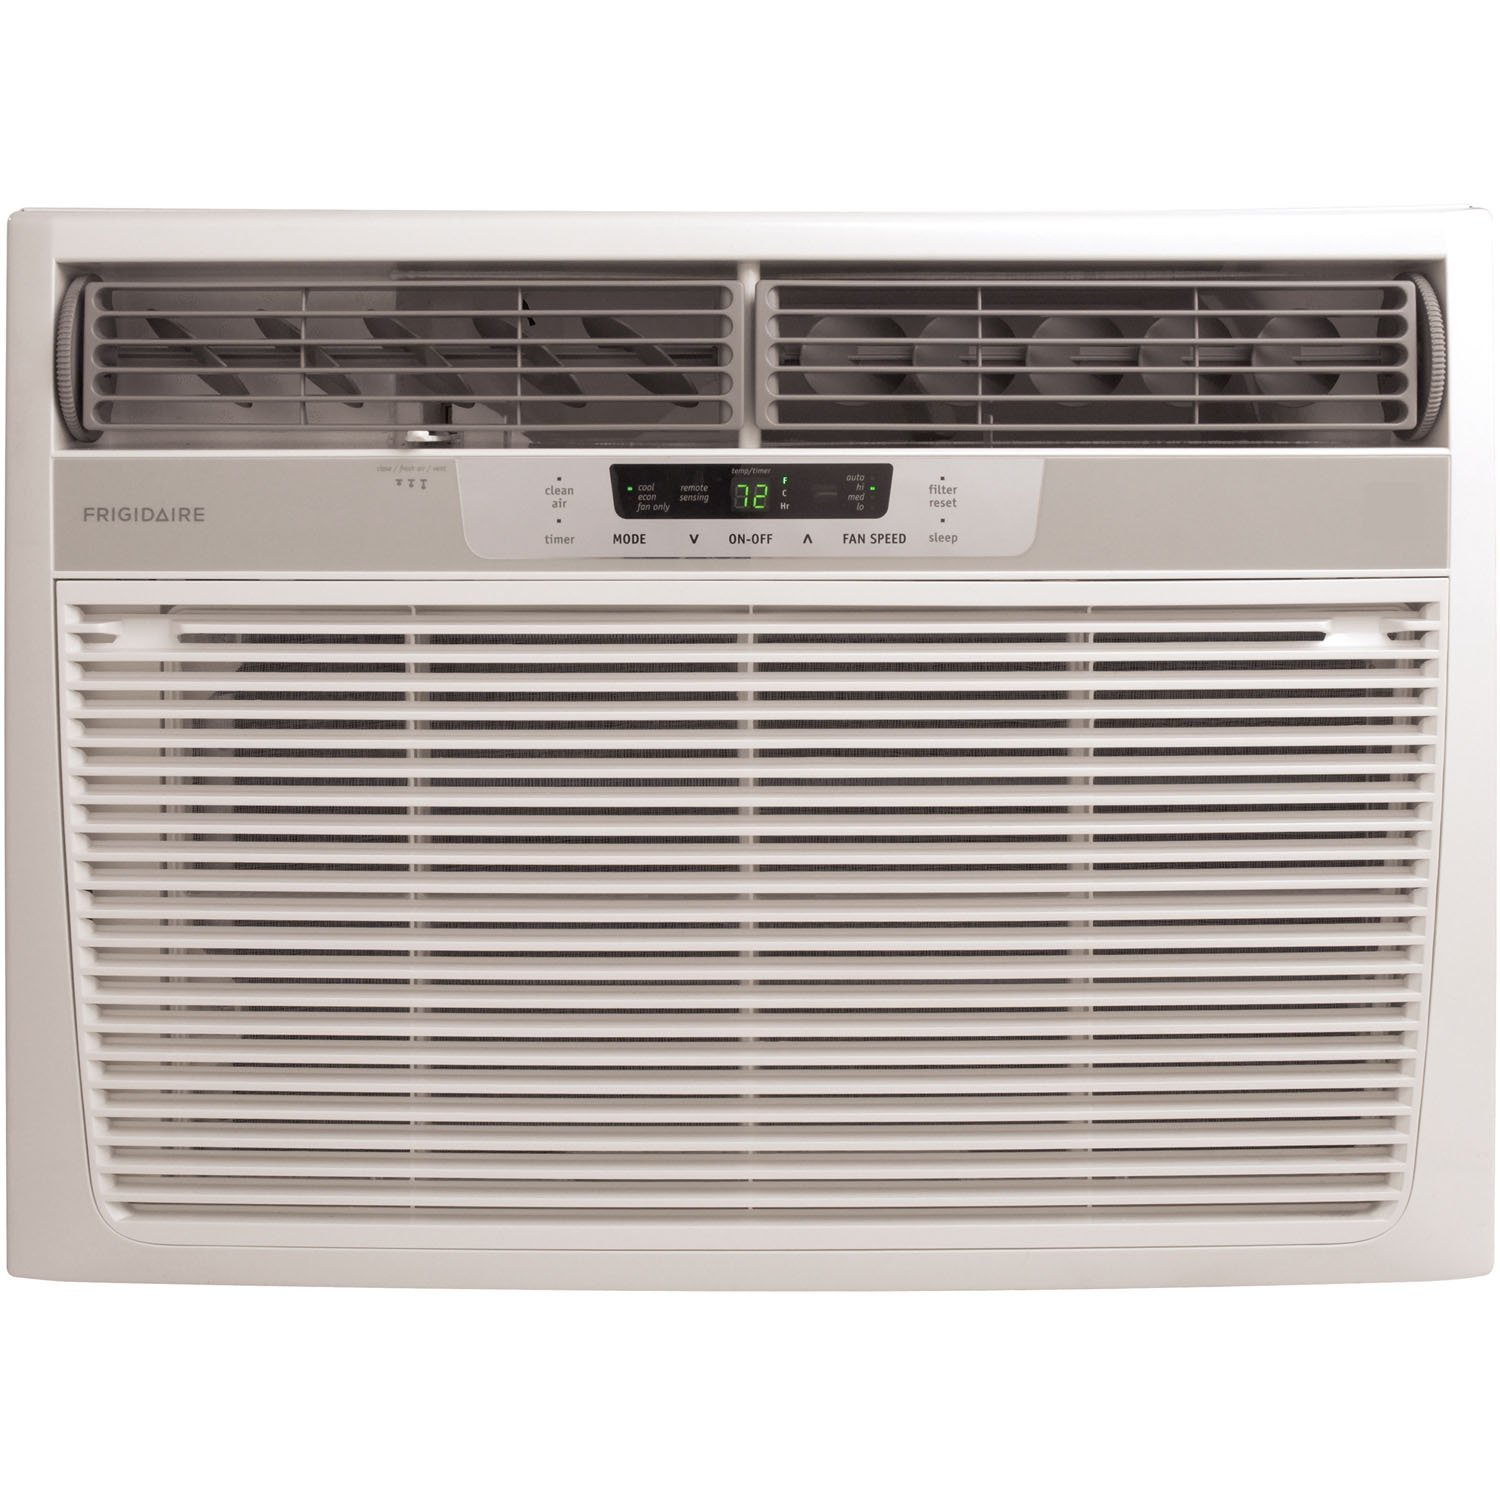 Frigidaire FRA156MT1 15,100 BTU Window-Mounted Median Room Air Conditioner